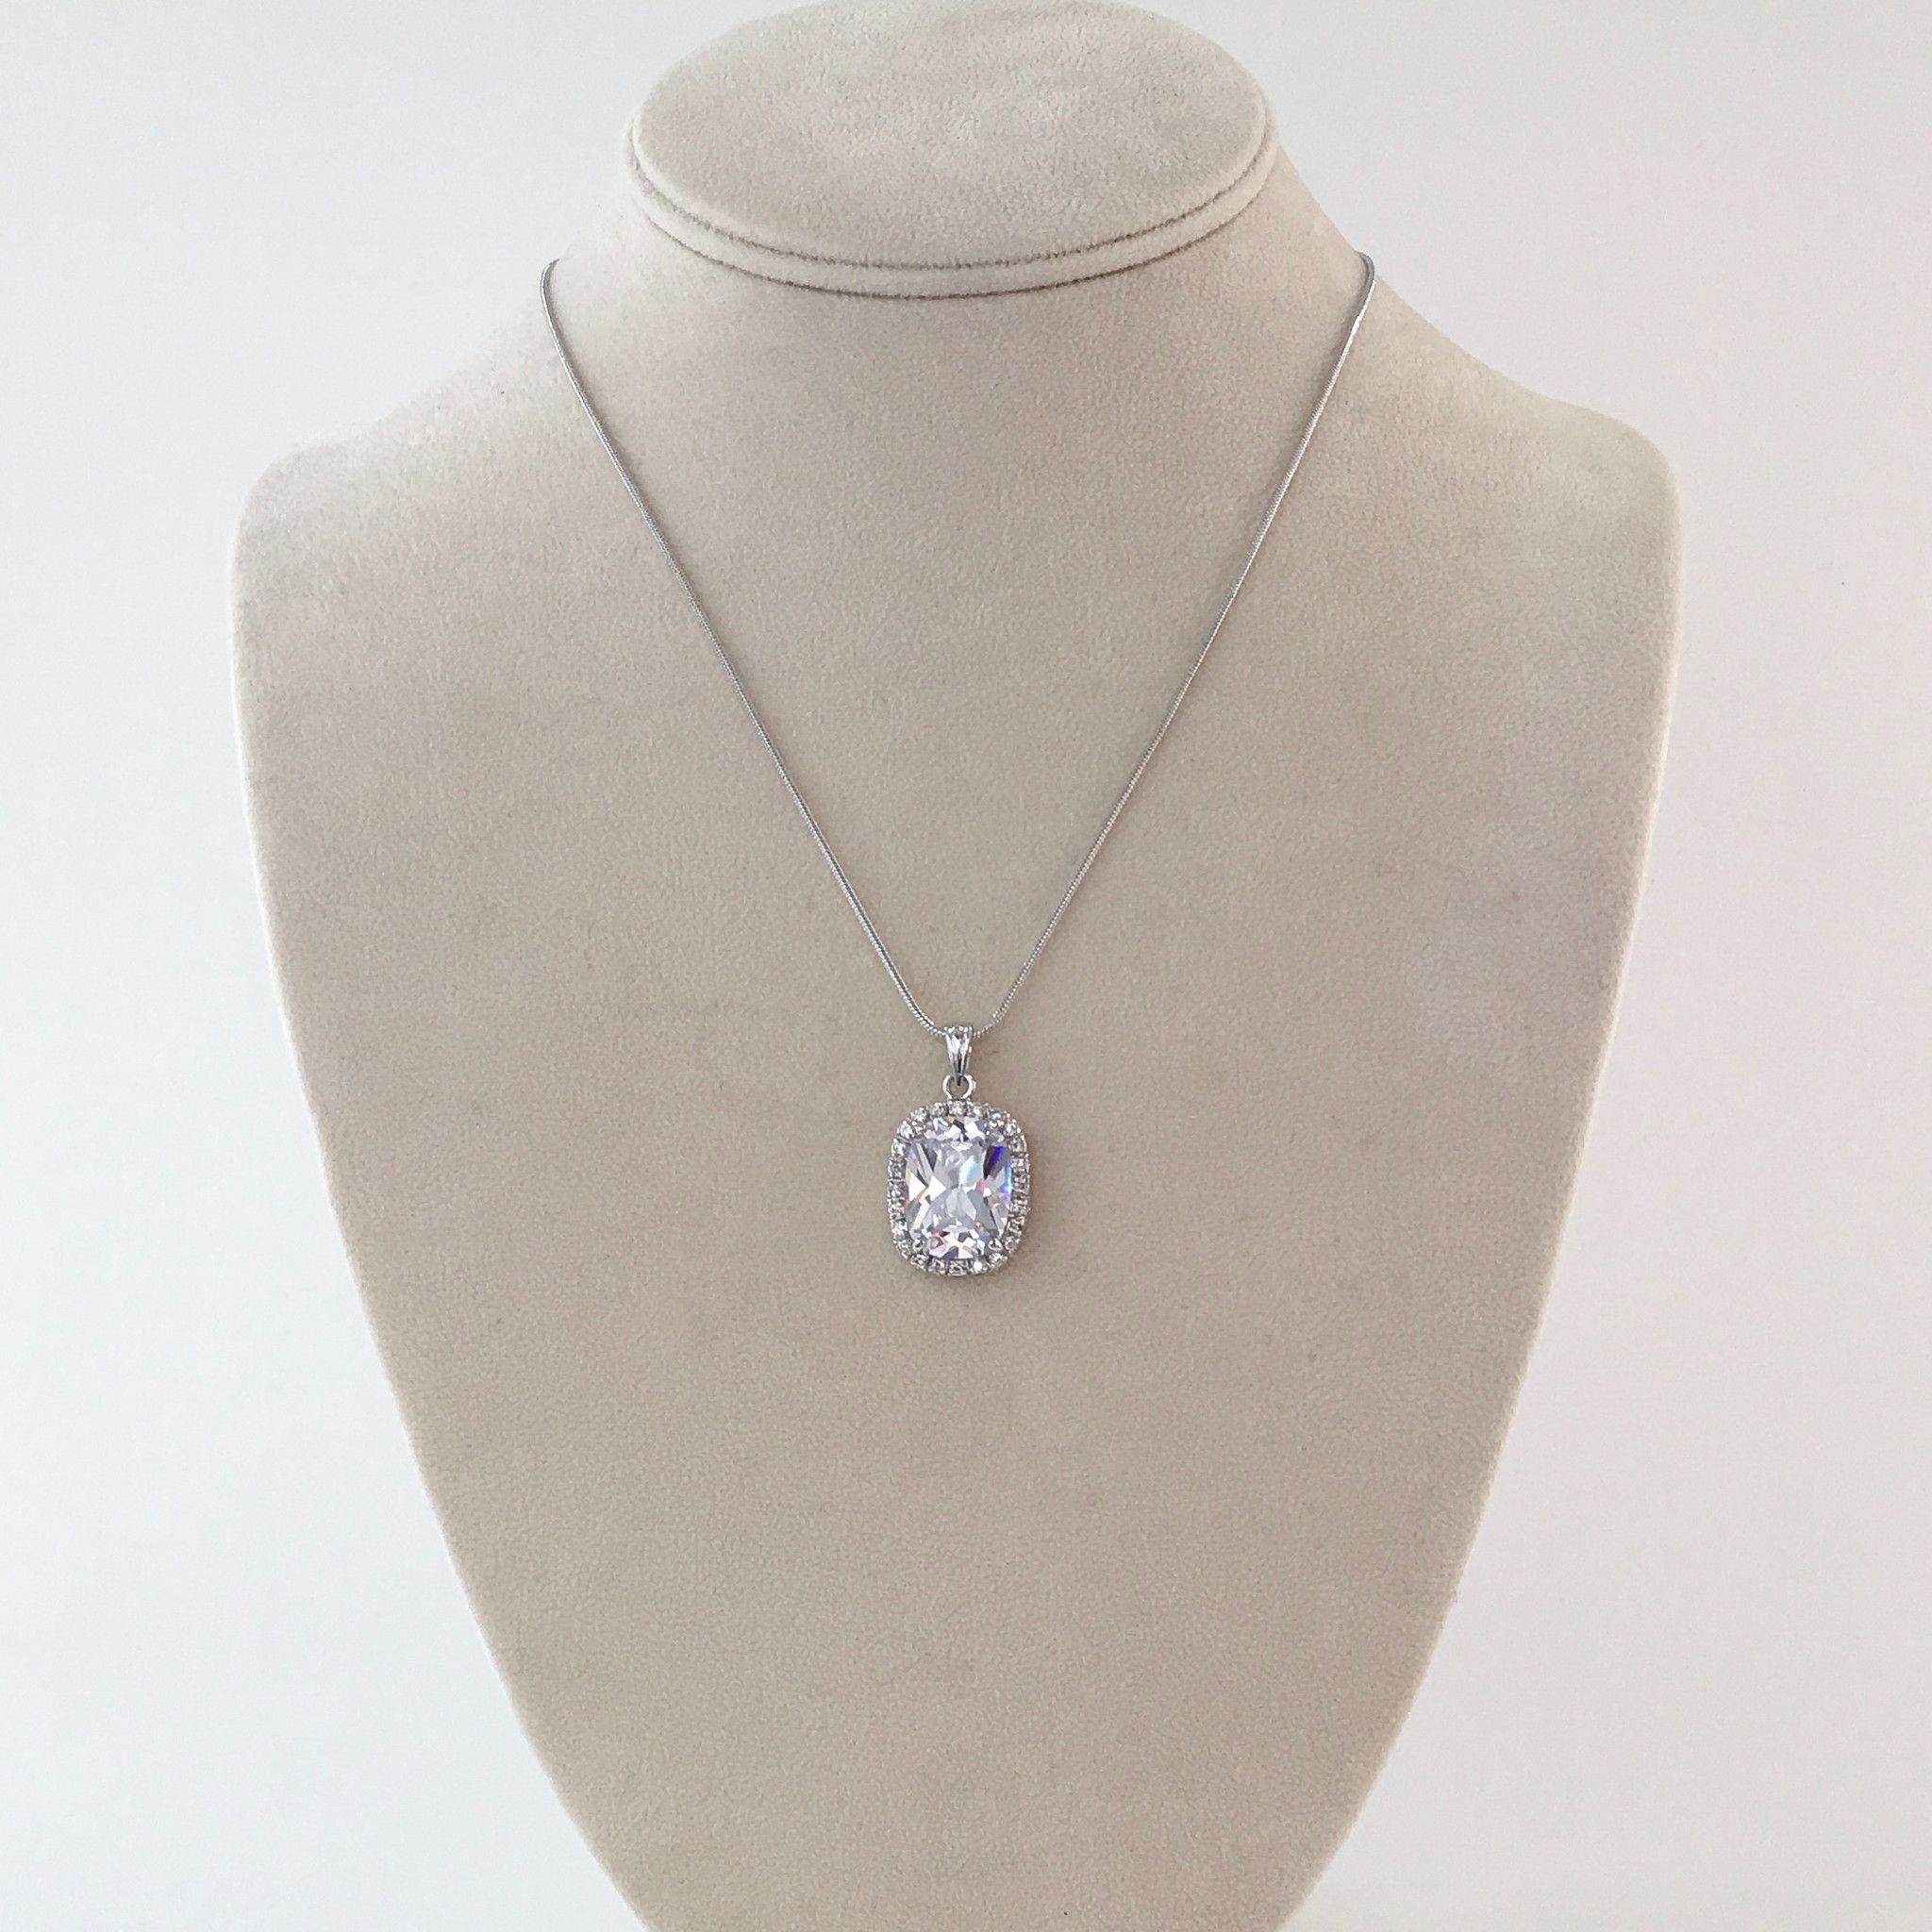 bale in cushion eeb diamond setting pendant single solitaire platinum necklace cut